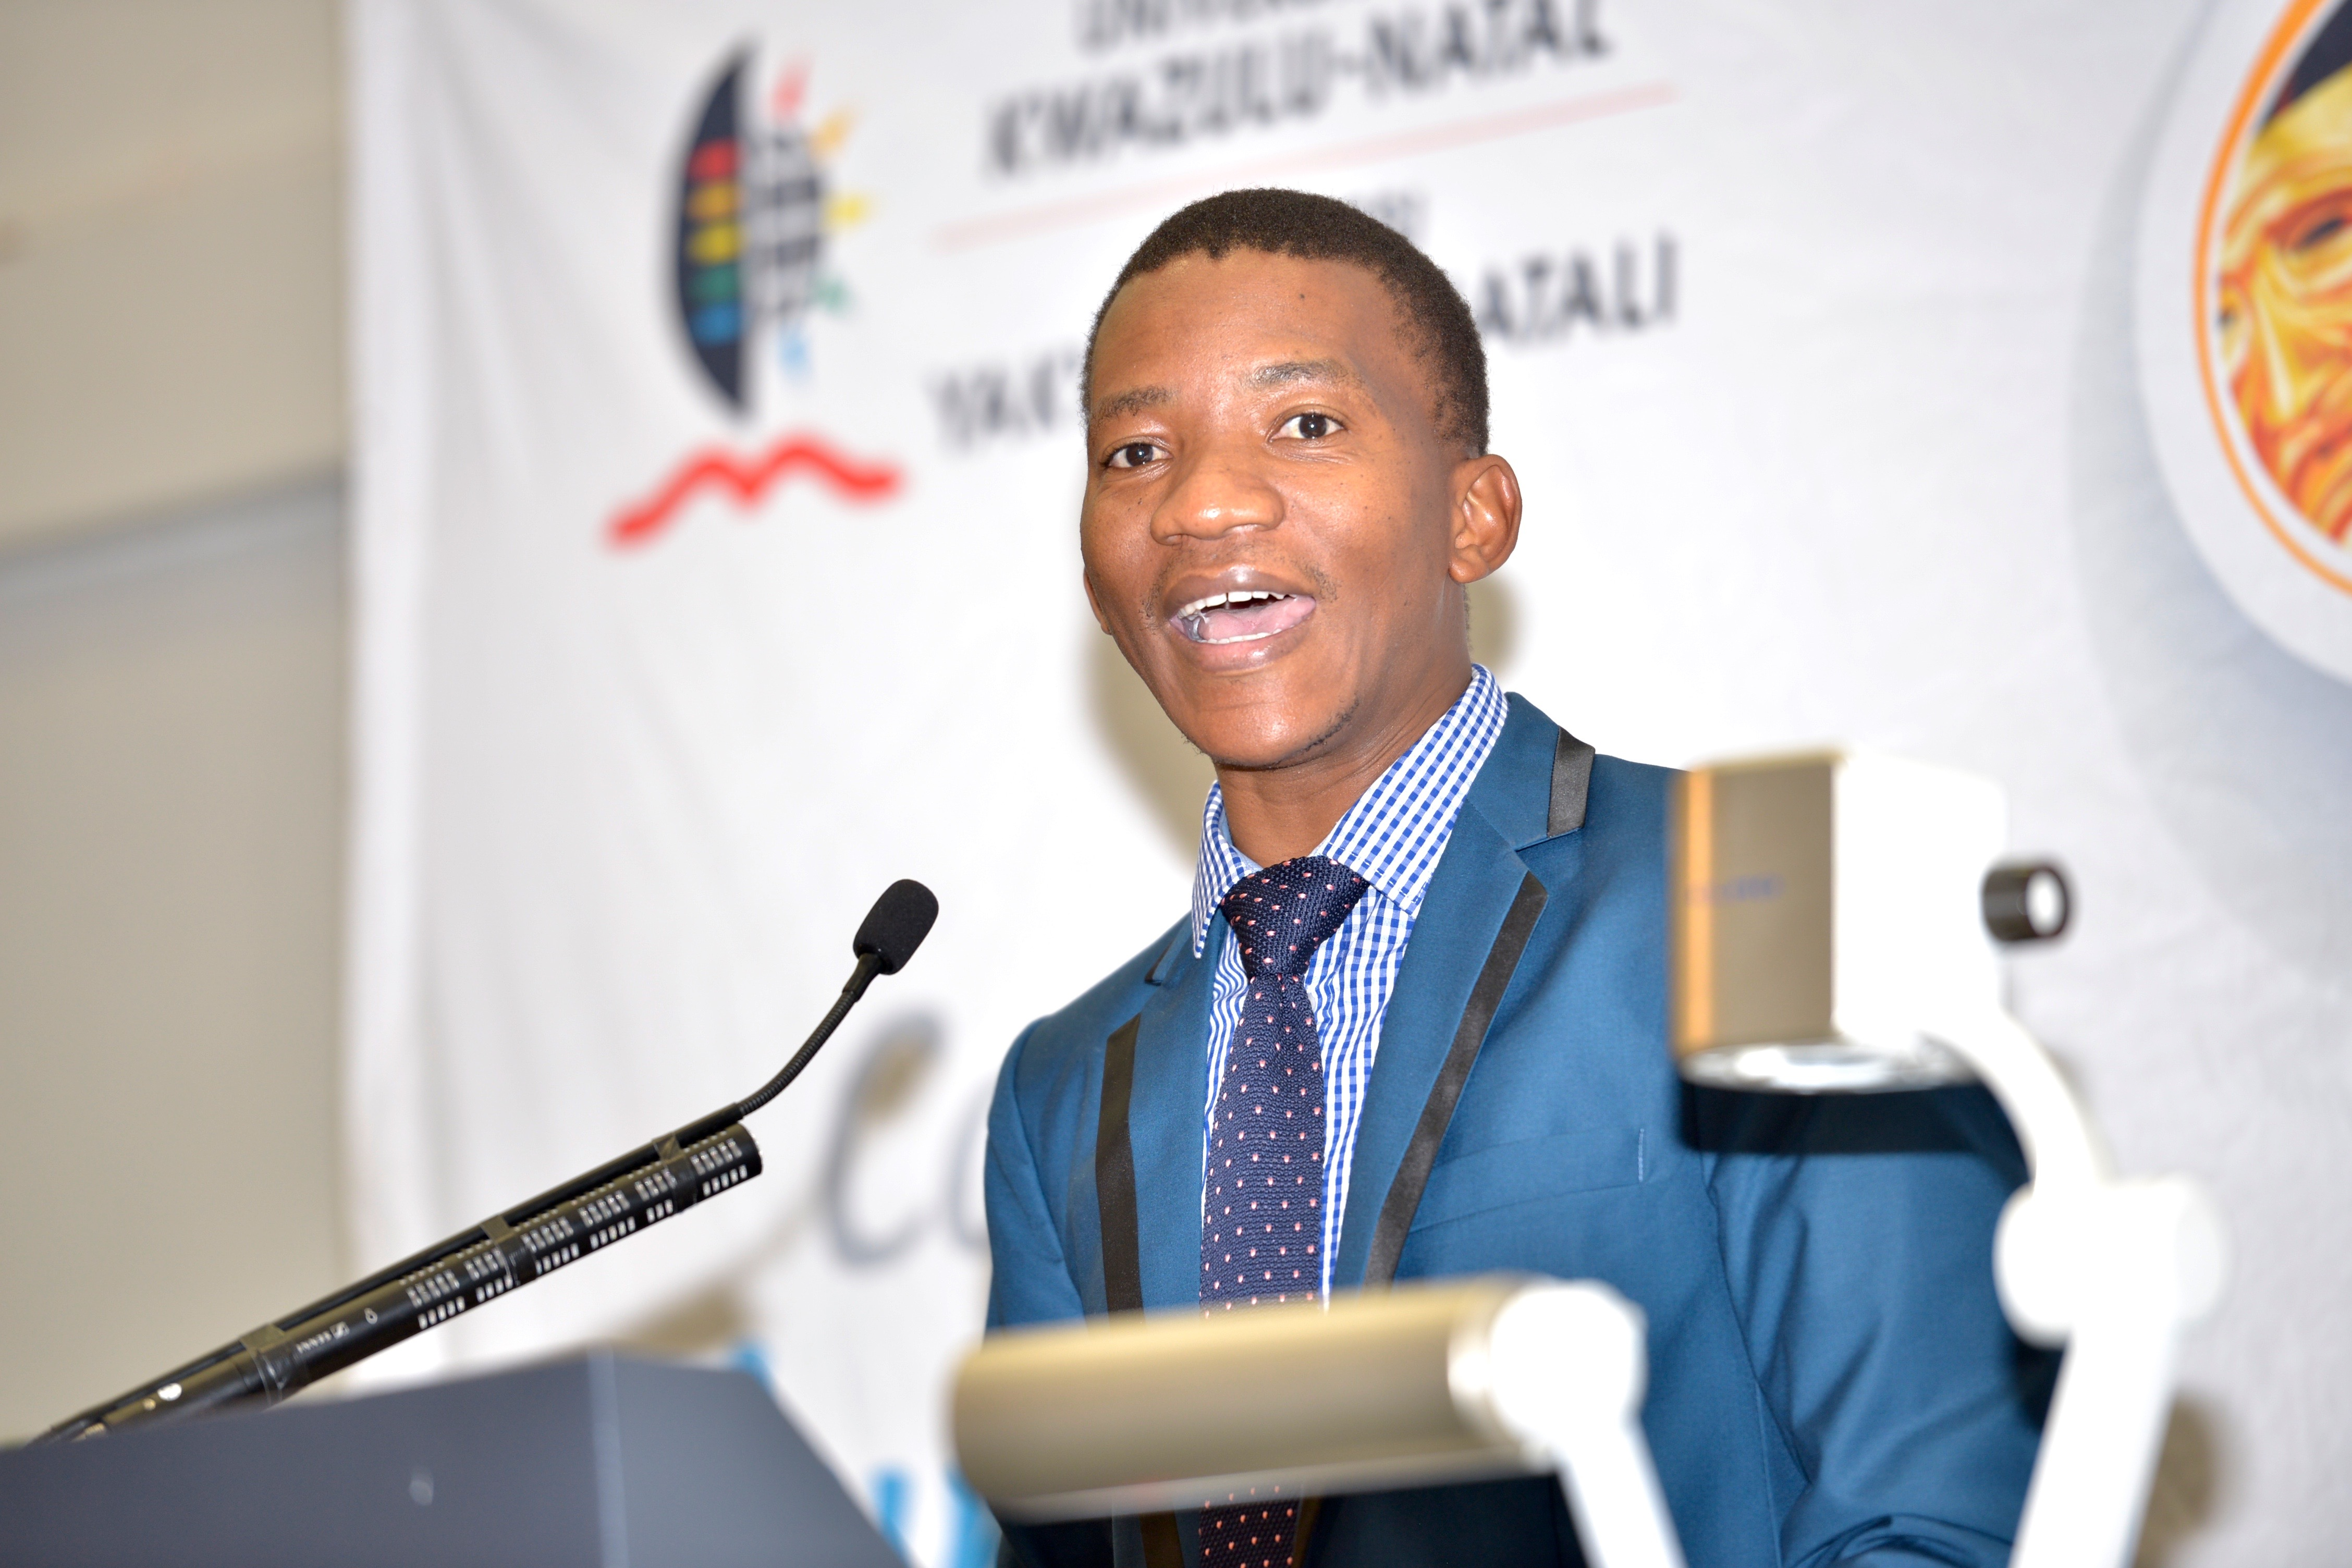 UKZN Professor Makes History as First Black SA Researcher in Education Awarded NRF P-Rating